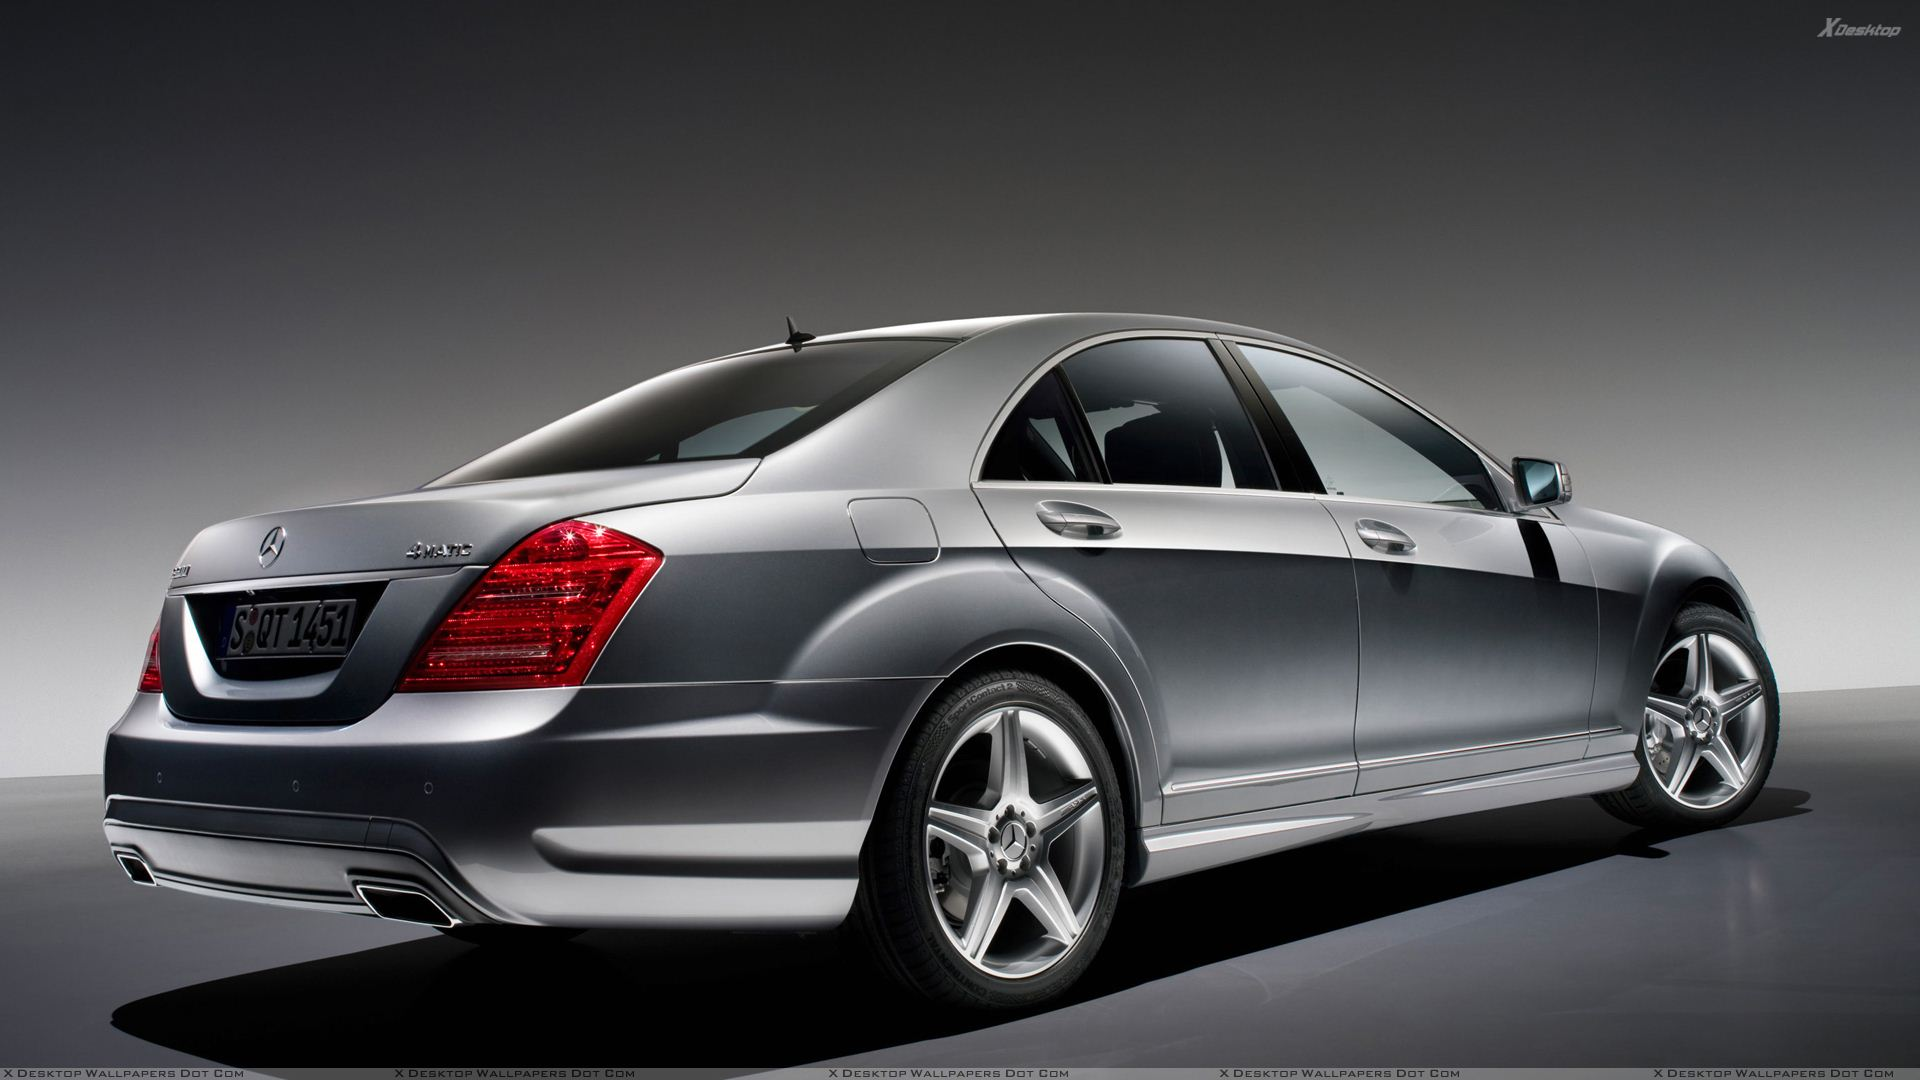 Image gallery 2012 mercedes s500 for Mercedes benz s550 2012